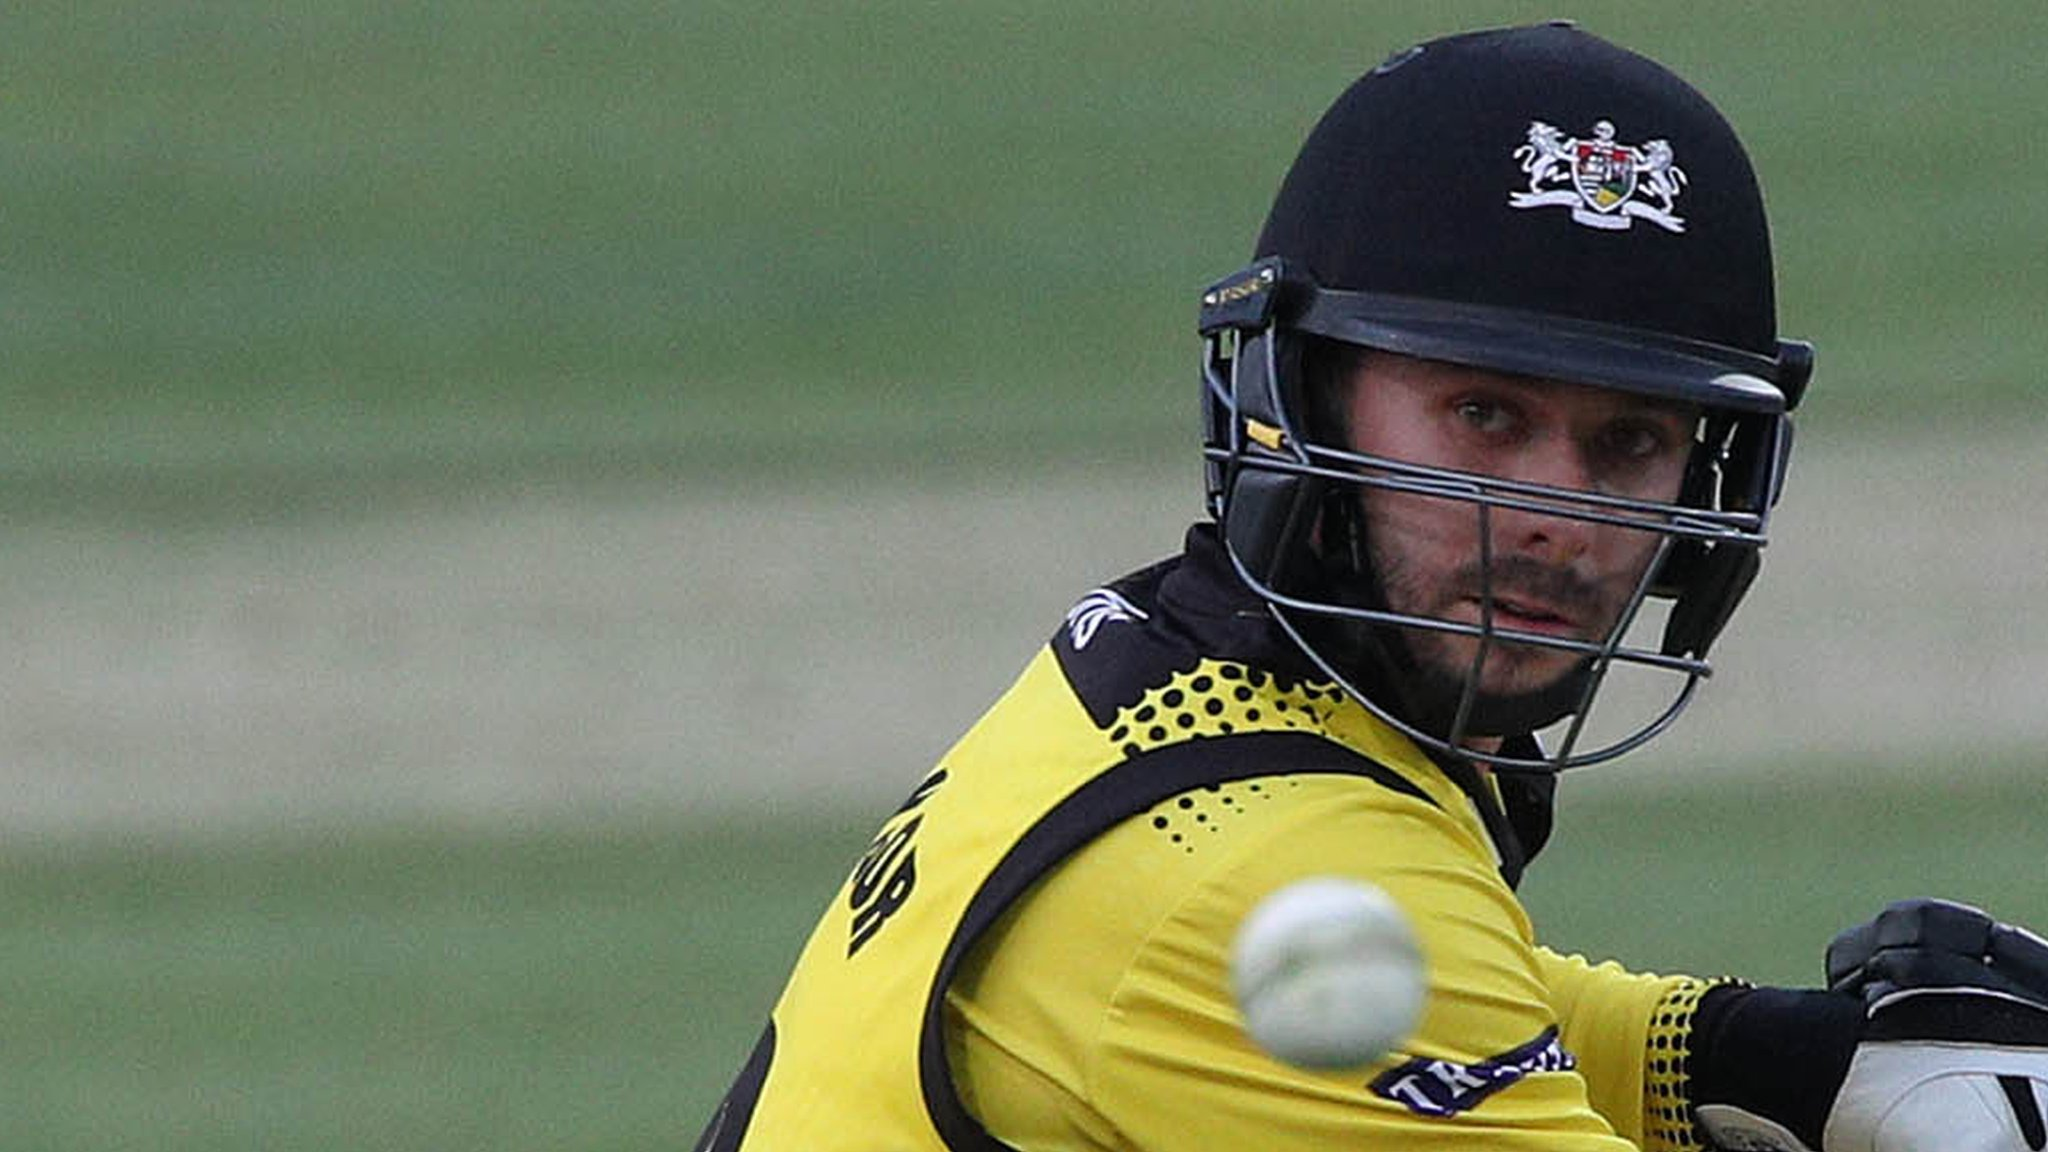 T20 Blast: Gloucestershire beat Kent by five runs in close finish in Bristol